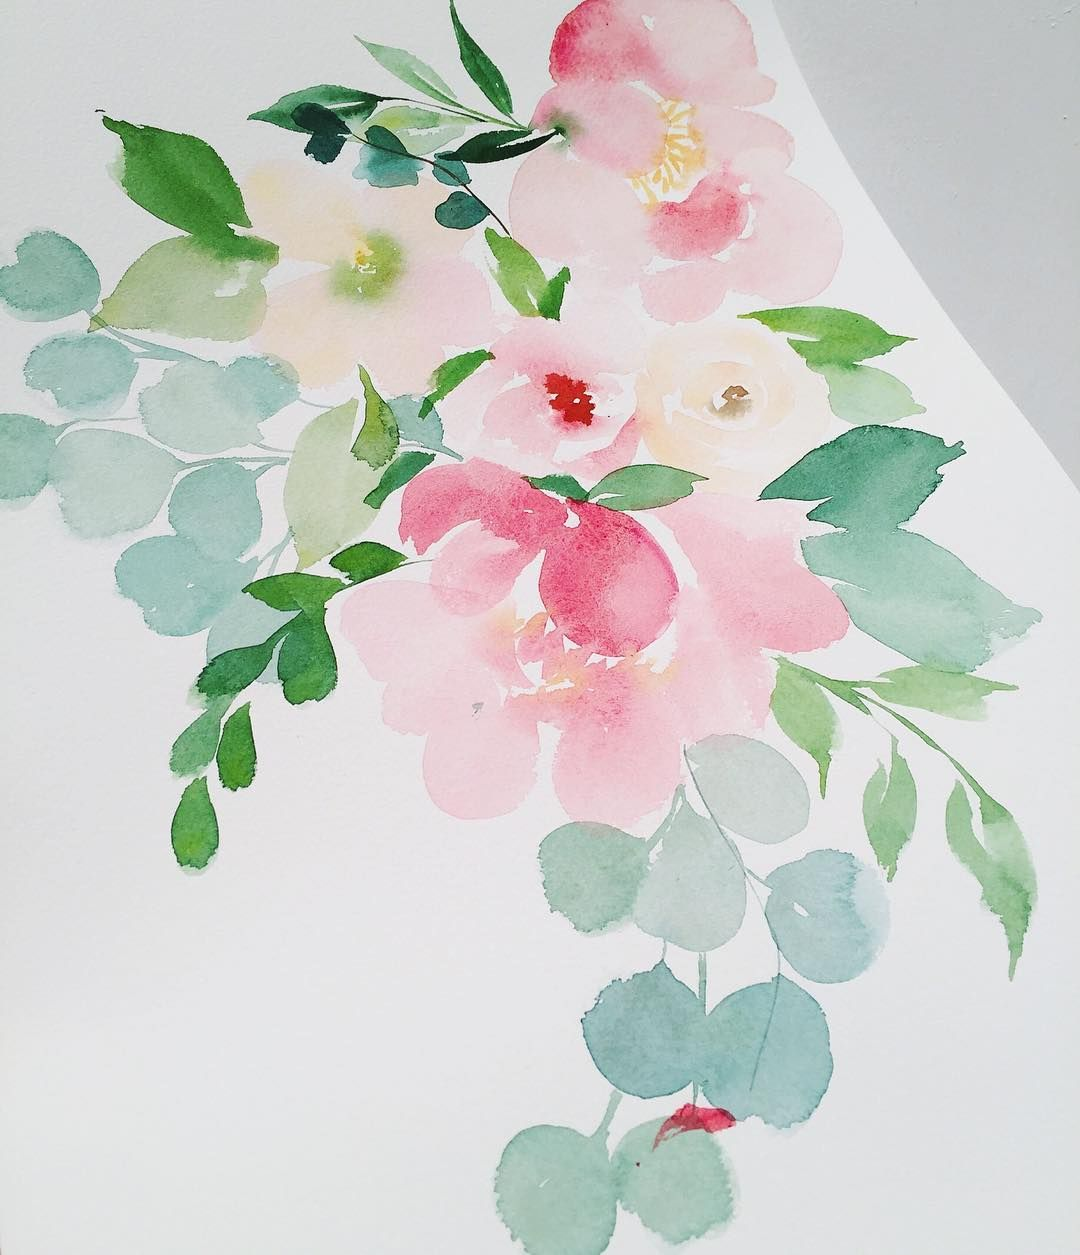 Watercolor Flowers And Paint Brushes: When Your Paint Brush Falls Out Of Your Hand And Gets A